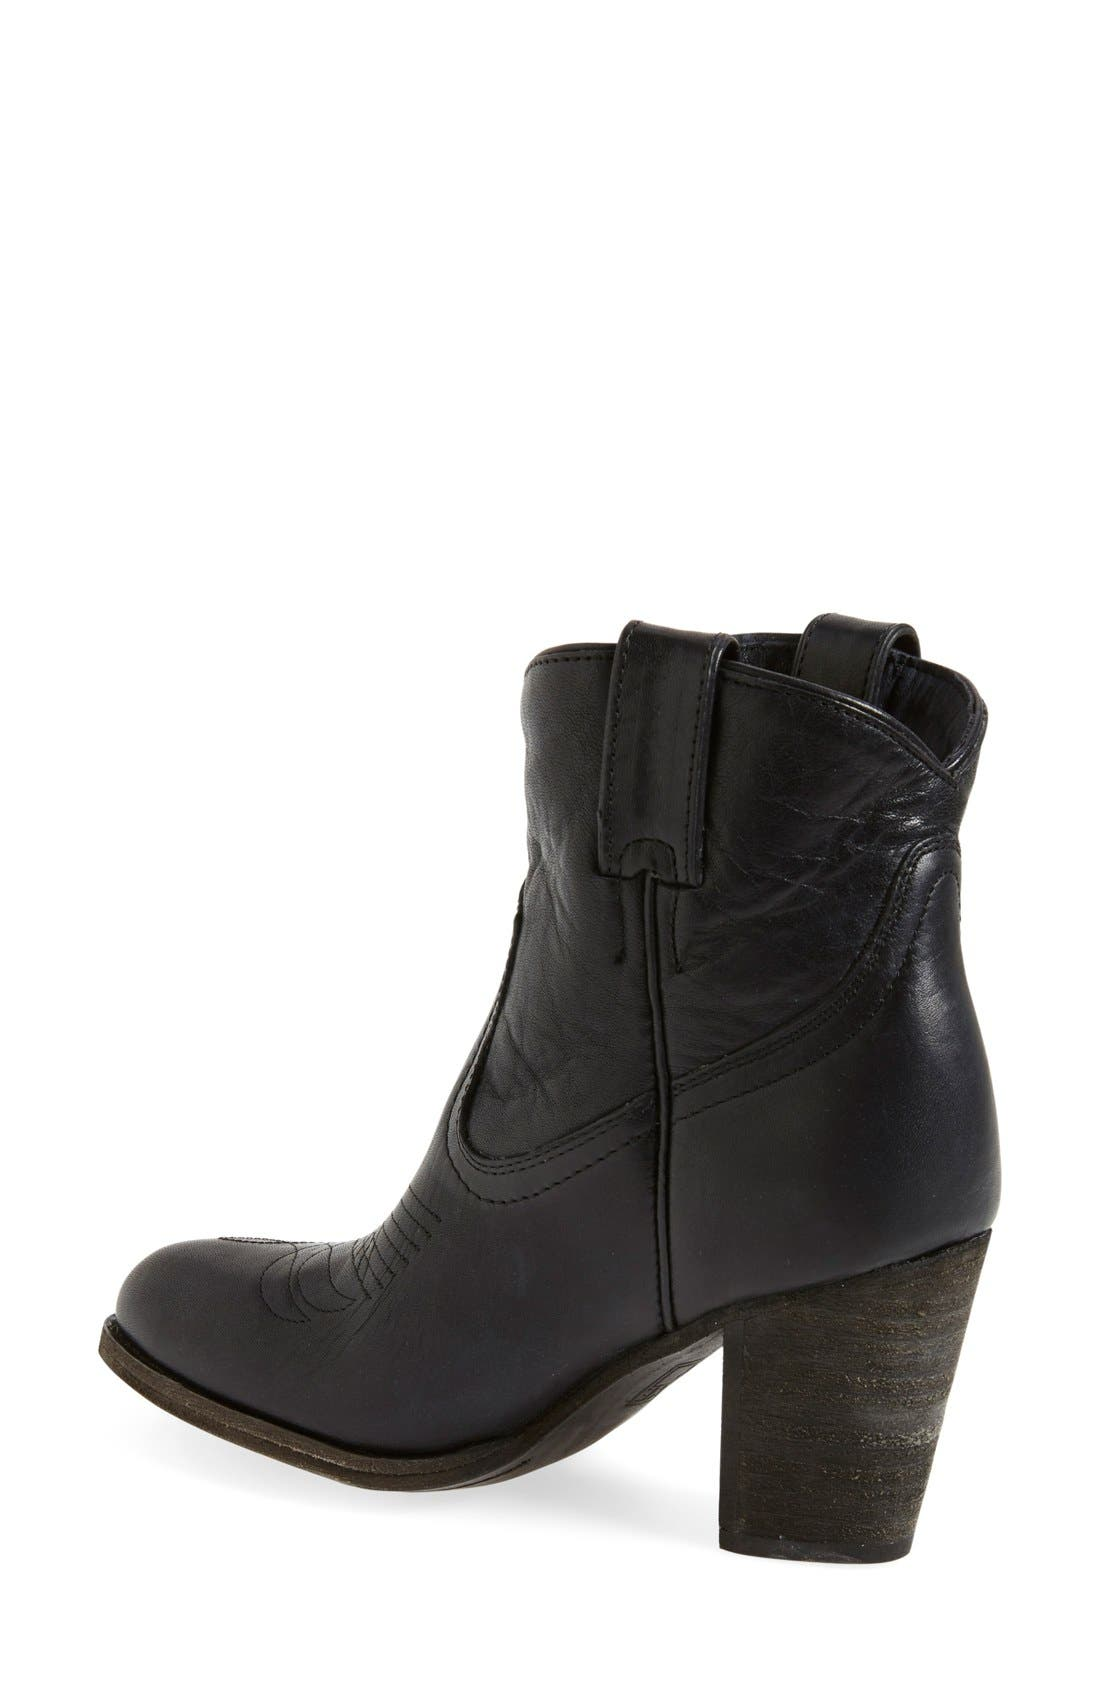 Alternate Image 2  - Frye 'Ilana' Short Western Boot (Women)